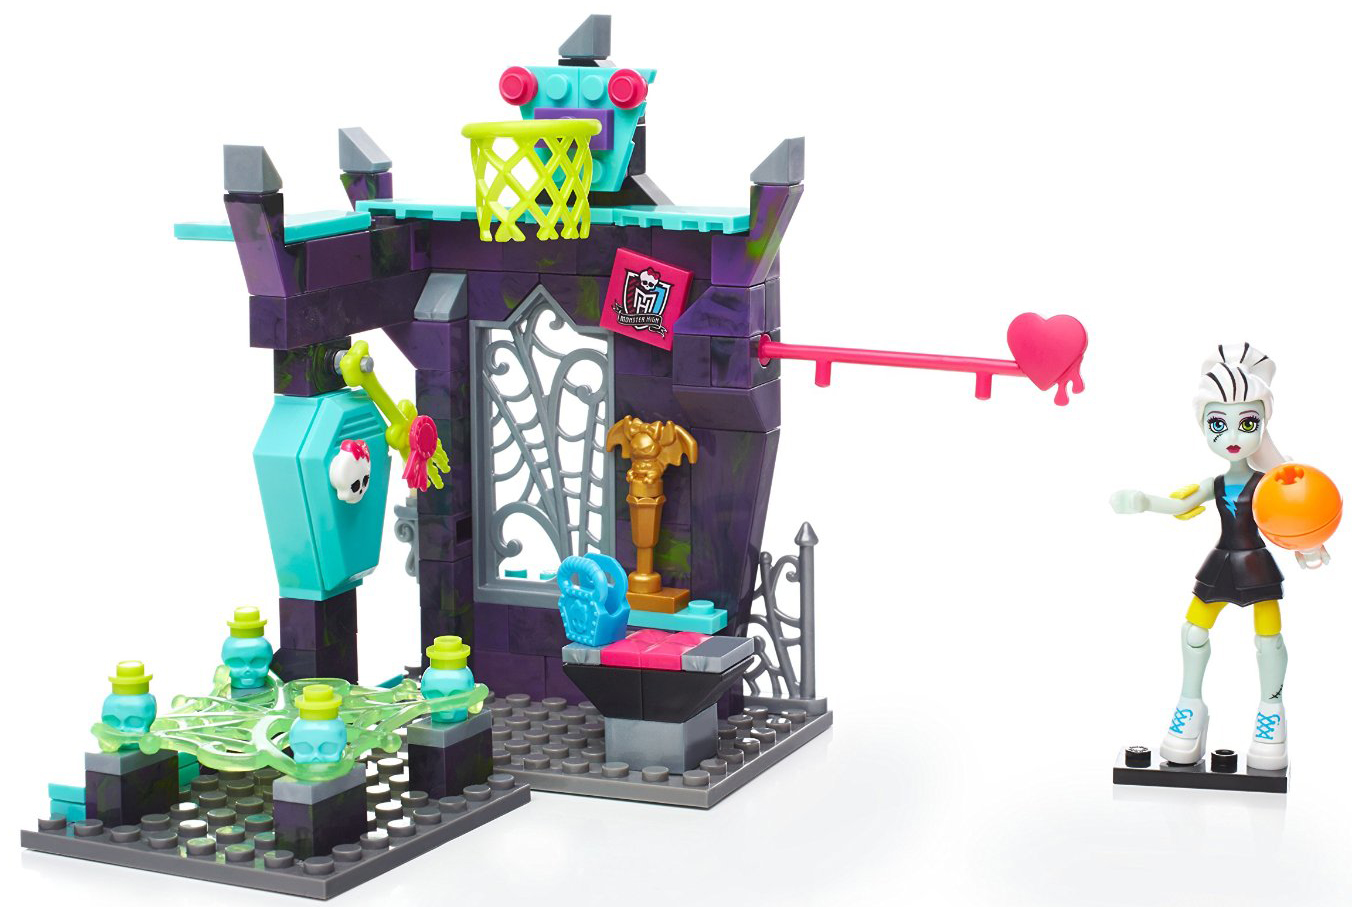 Игровой набор Fisher Price Monster High Класс физкультуры цена